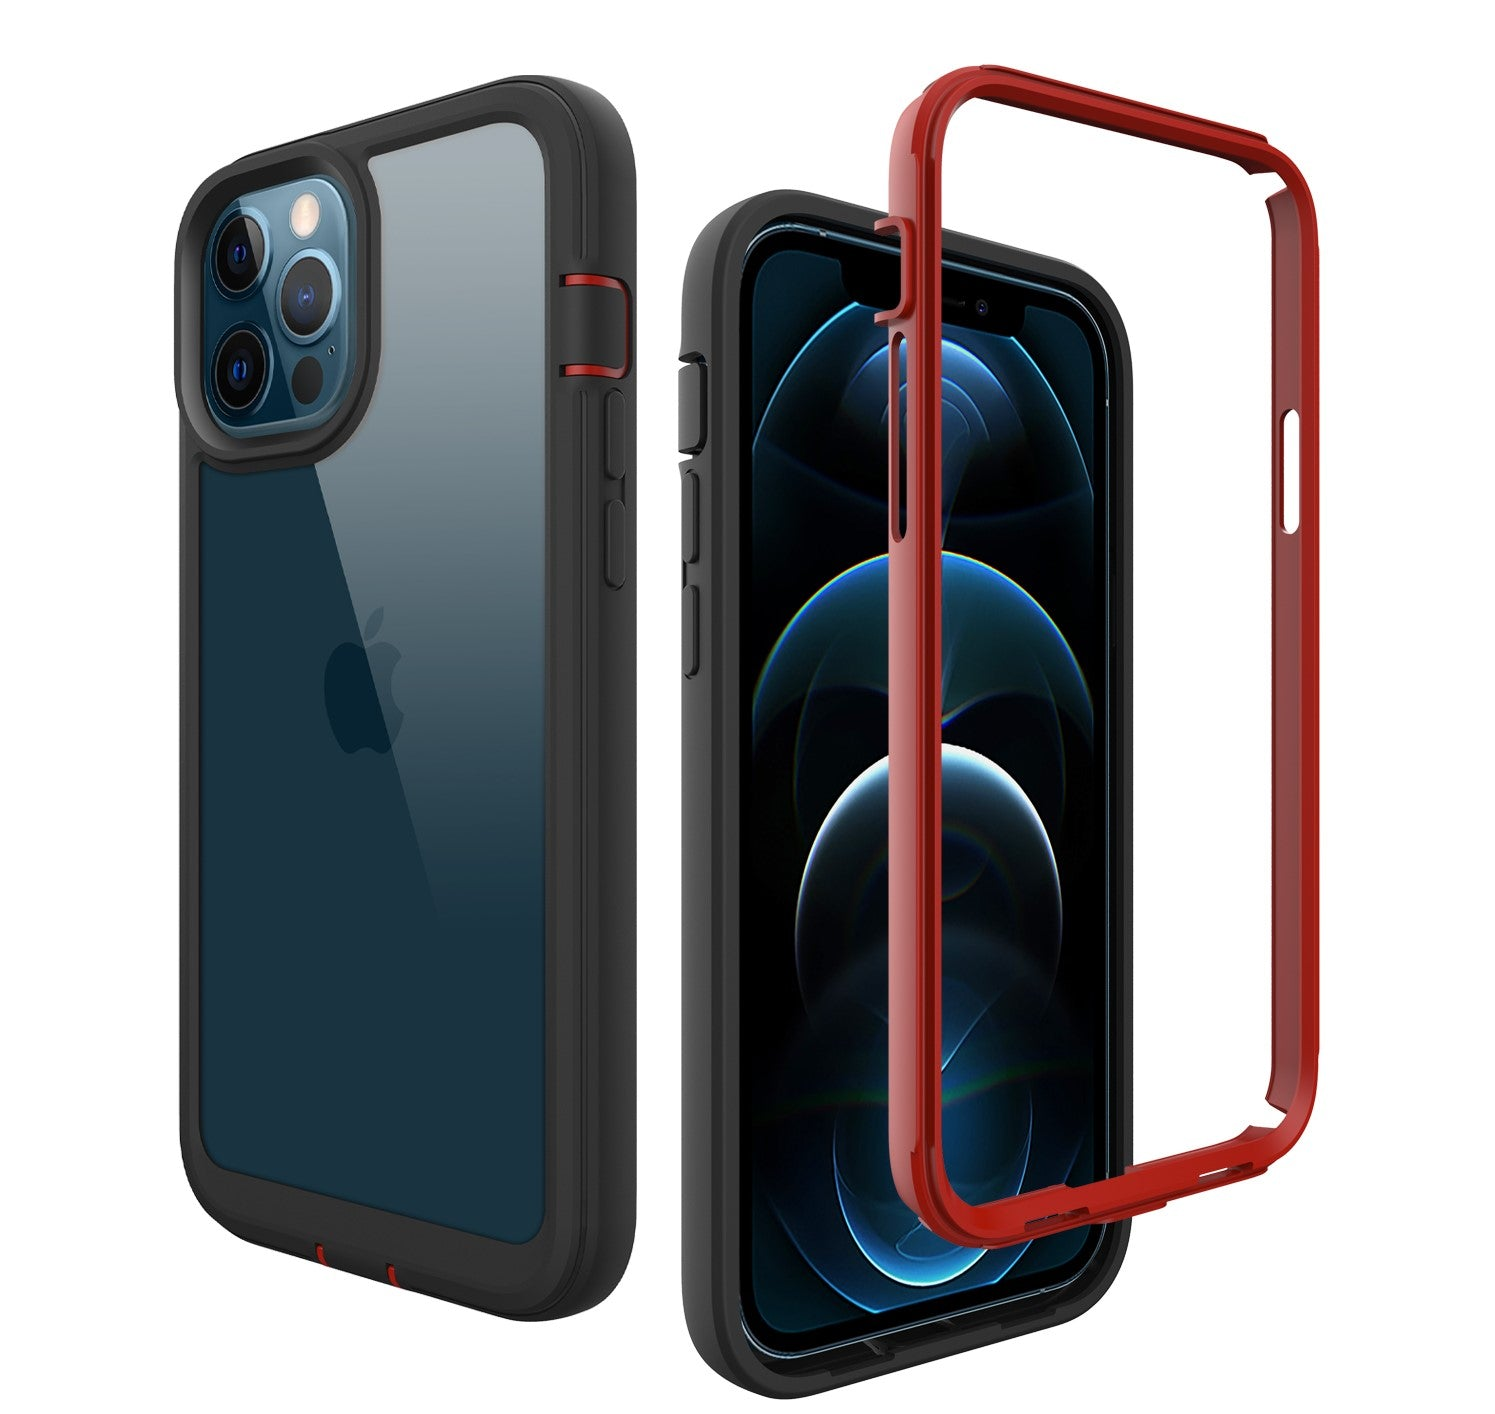 ZEOS Terrain Clear Case for iPhone 12 Mini